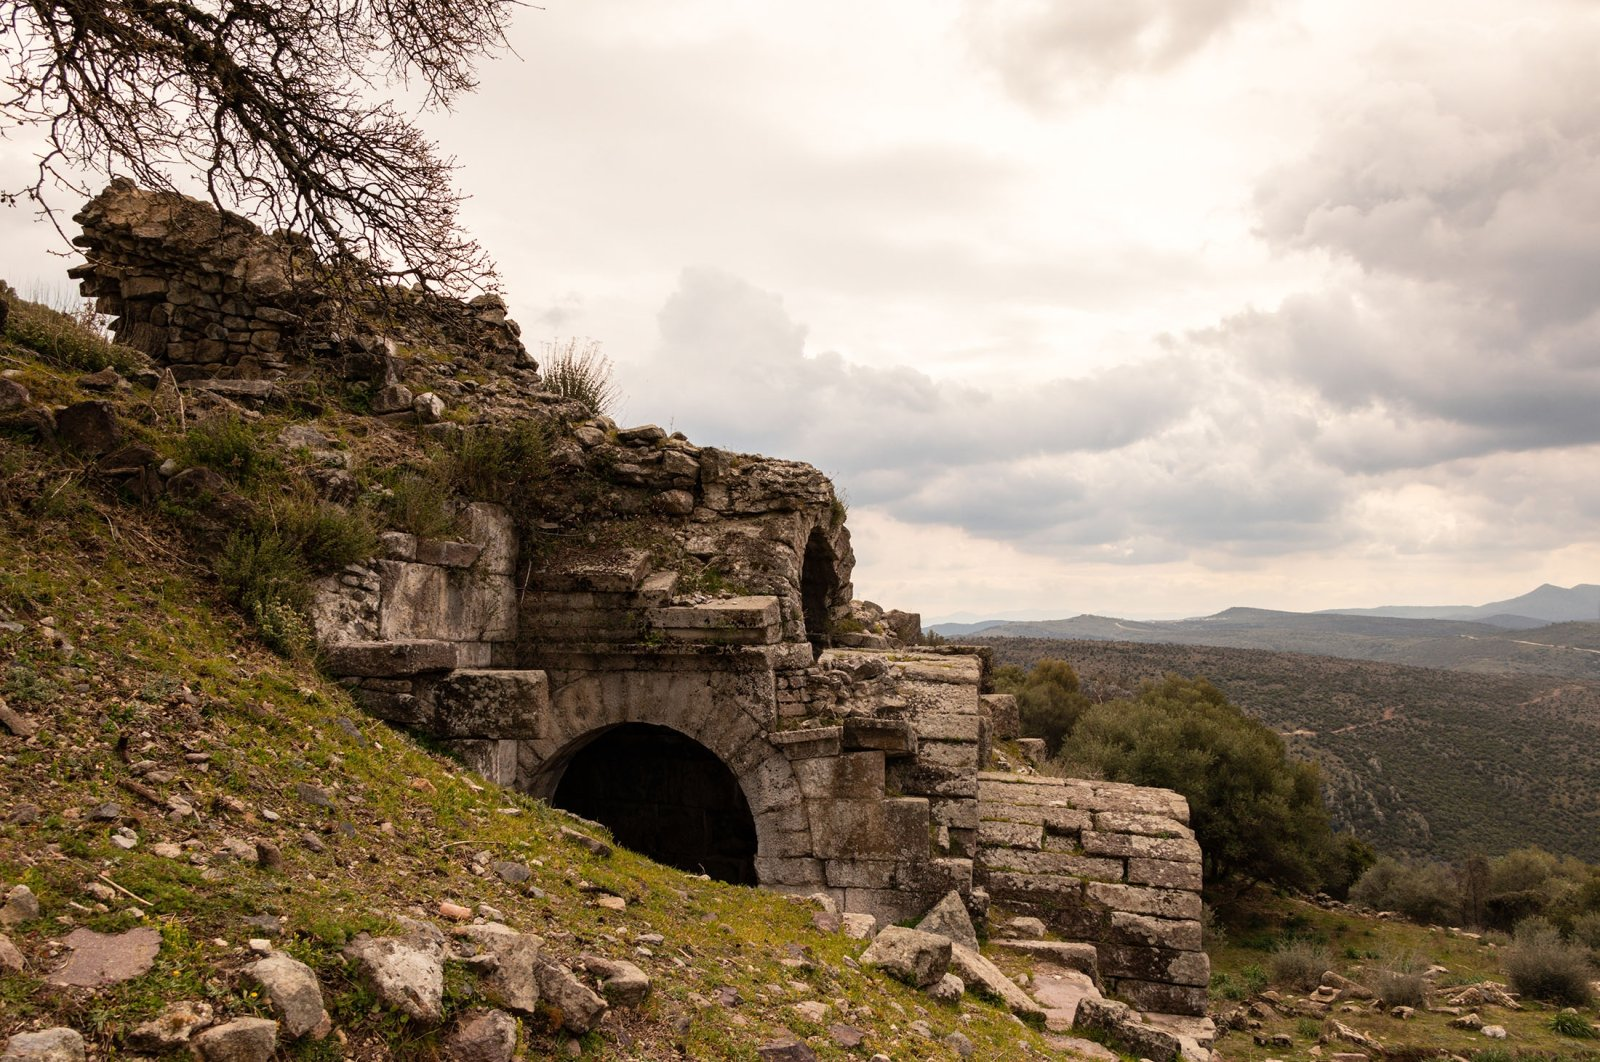 The Aegean region is thought to have been named after the ancient city of Aigai. (Shutterstock Photo)